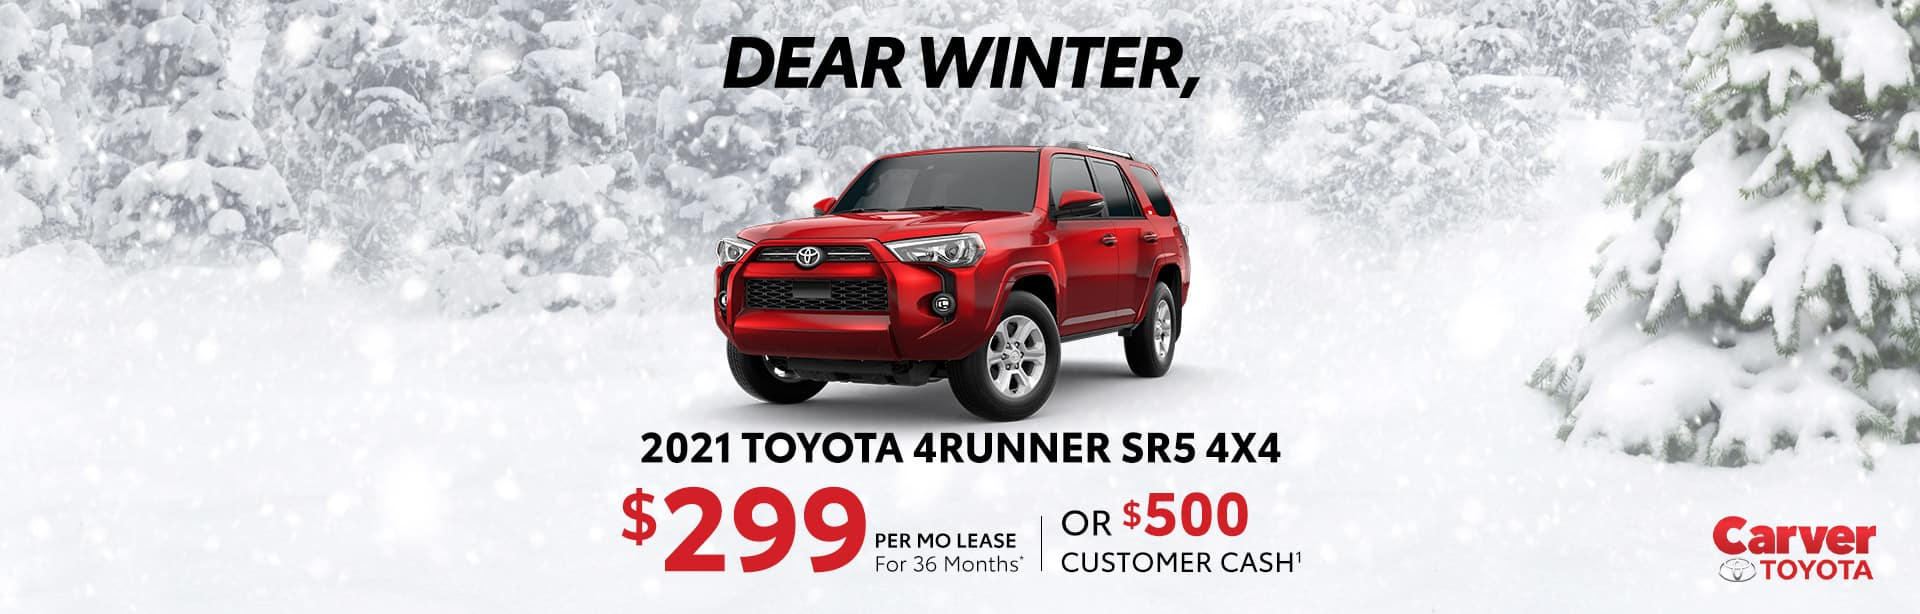 Huge savings on a new 2021 Toyota 4Runner SR5 near Taylorsville IN